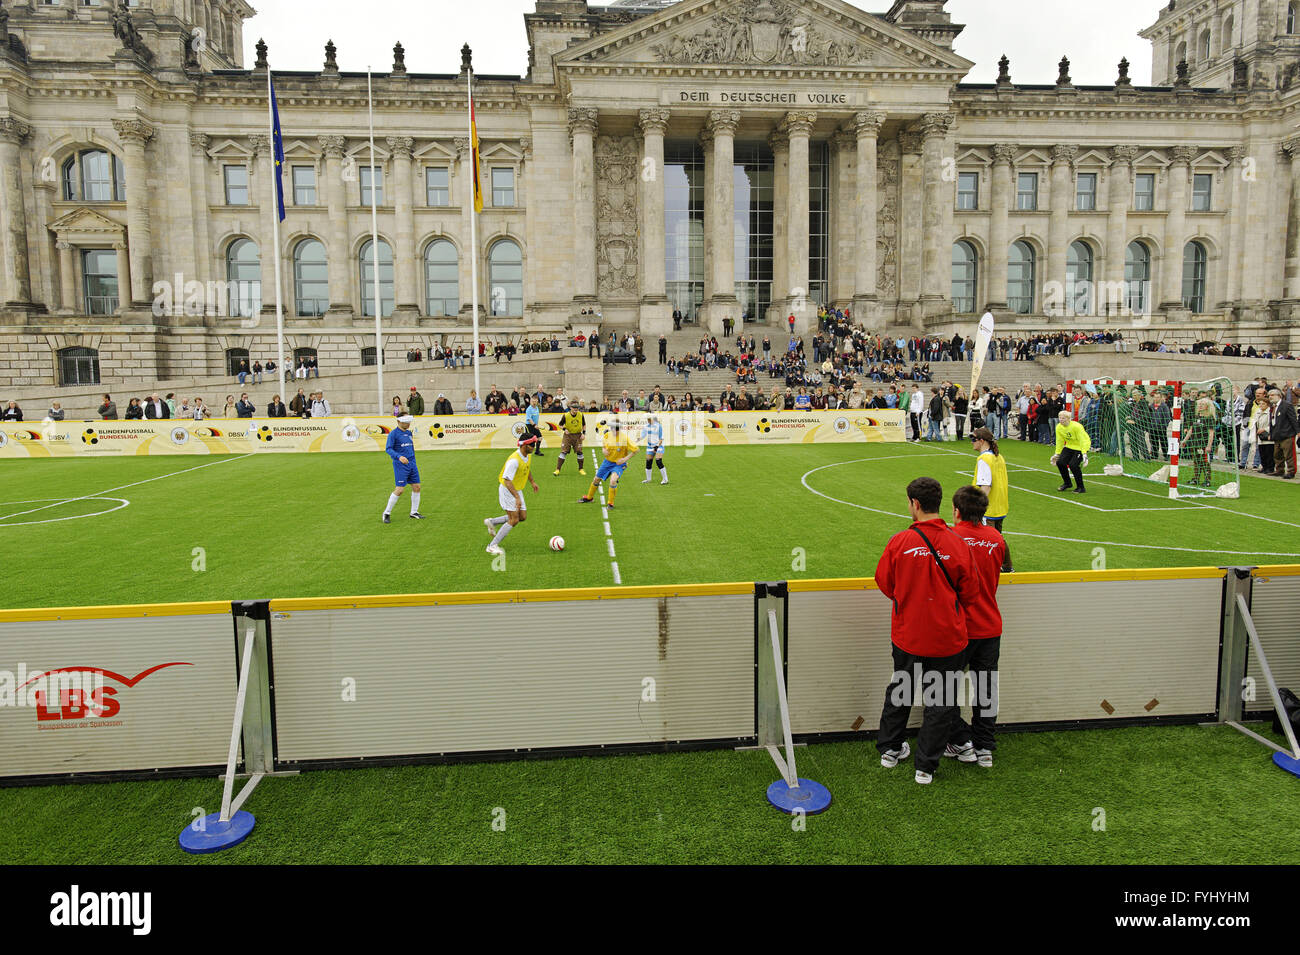 Football match in front of the Reichstag building - Stock Image